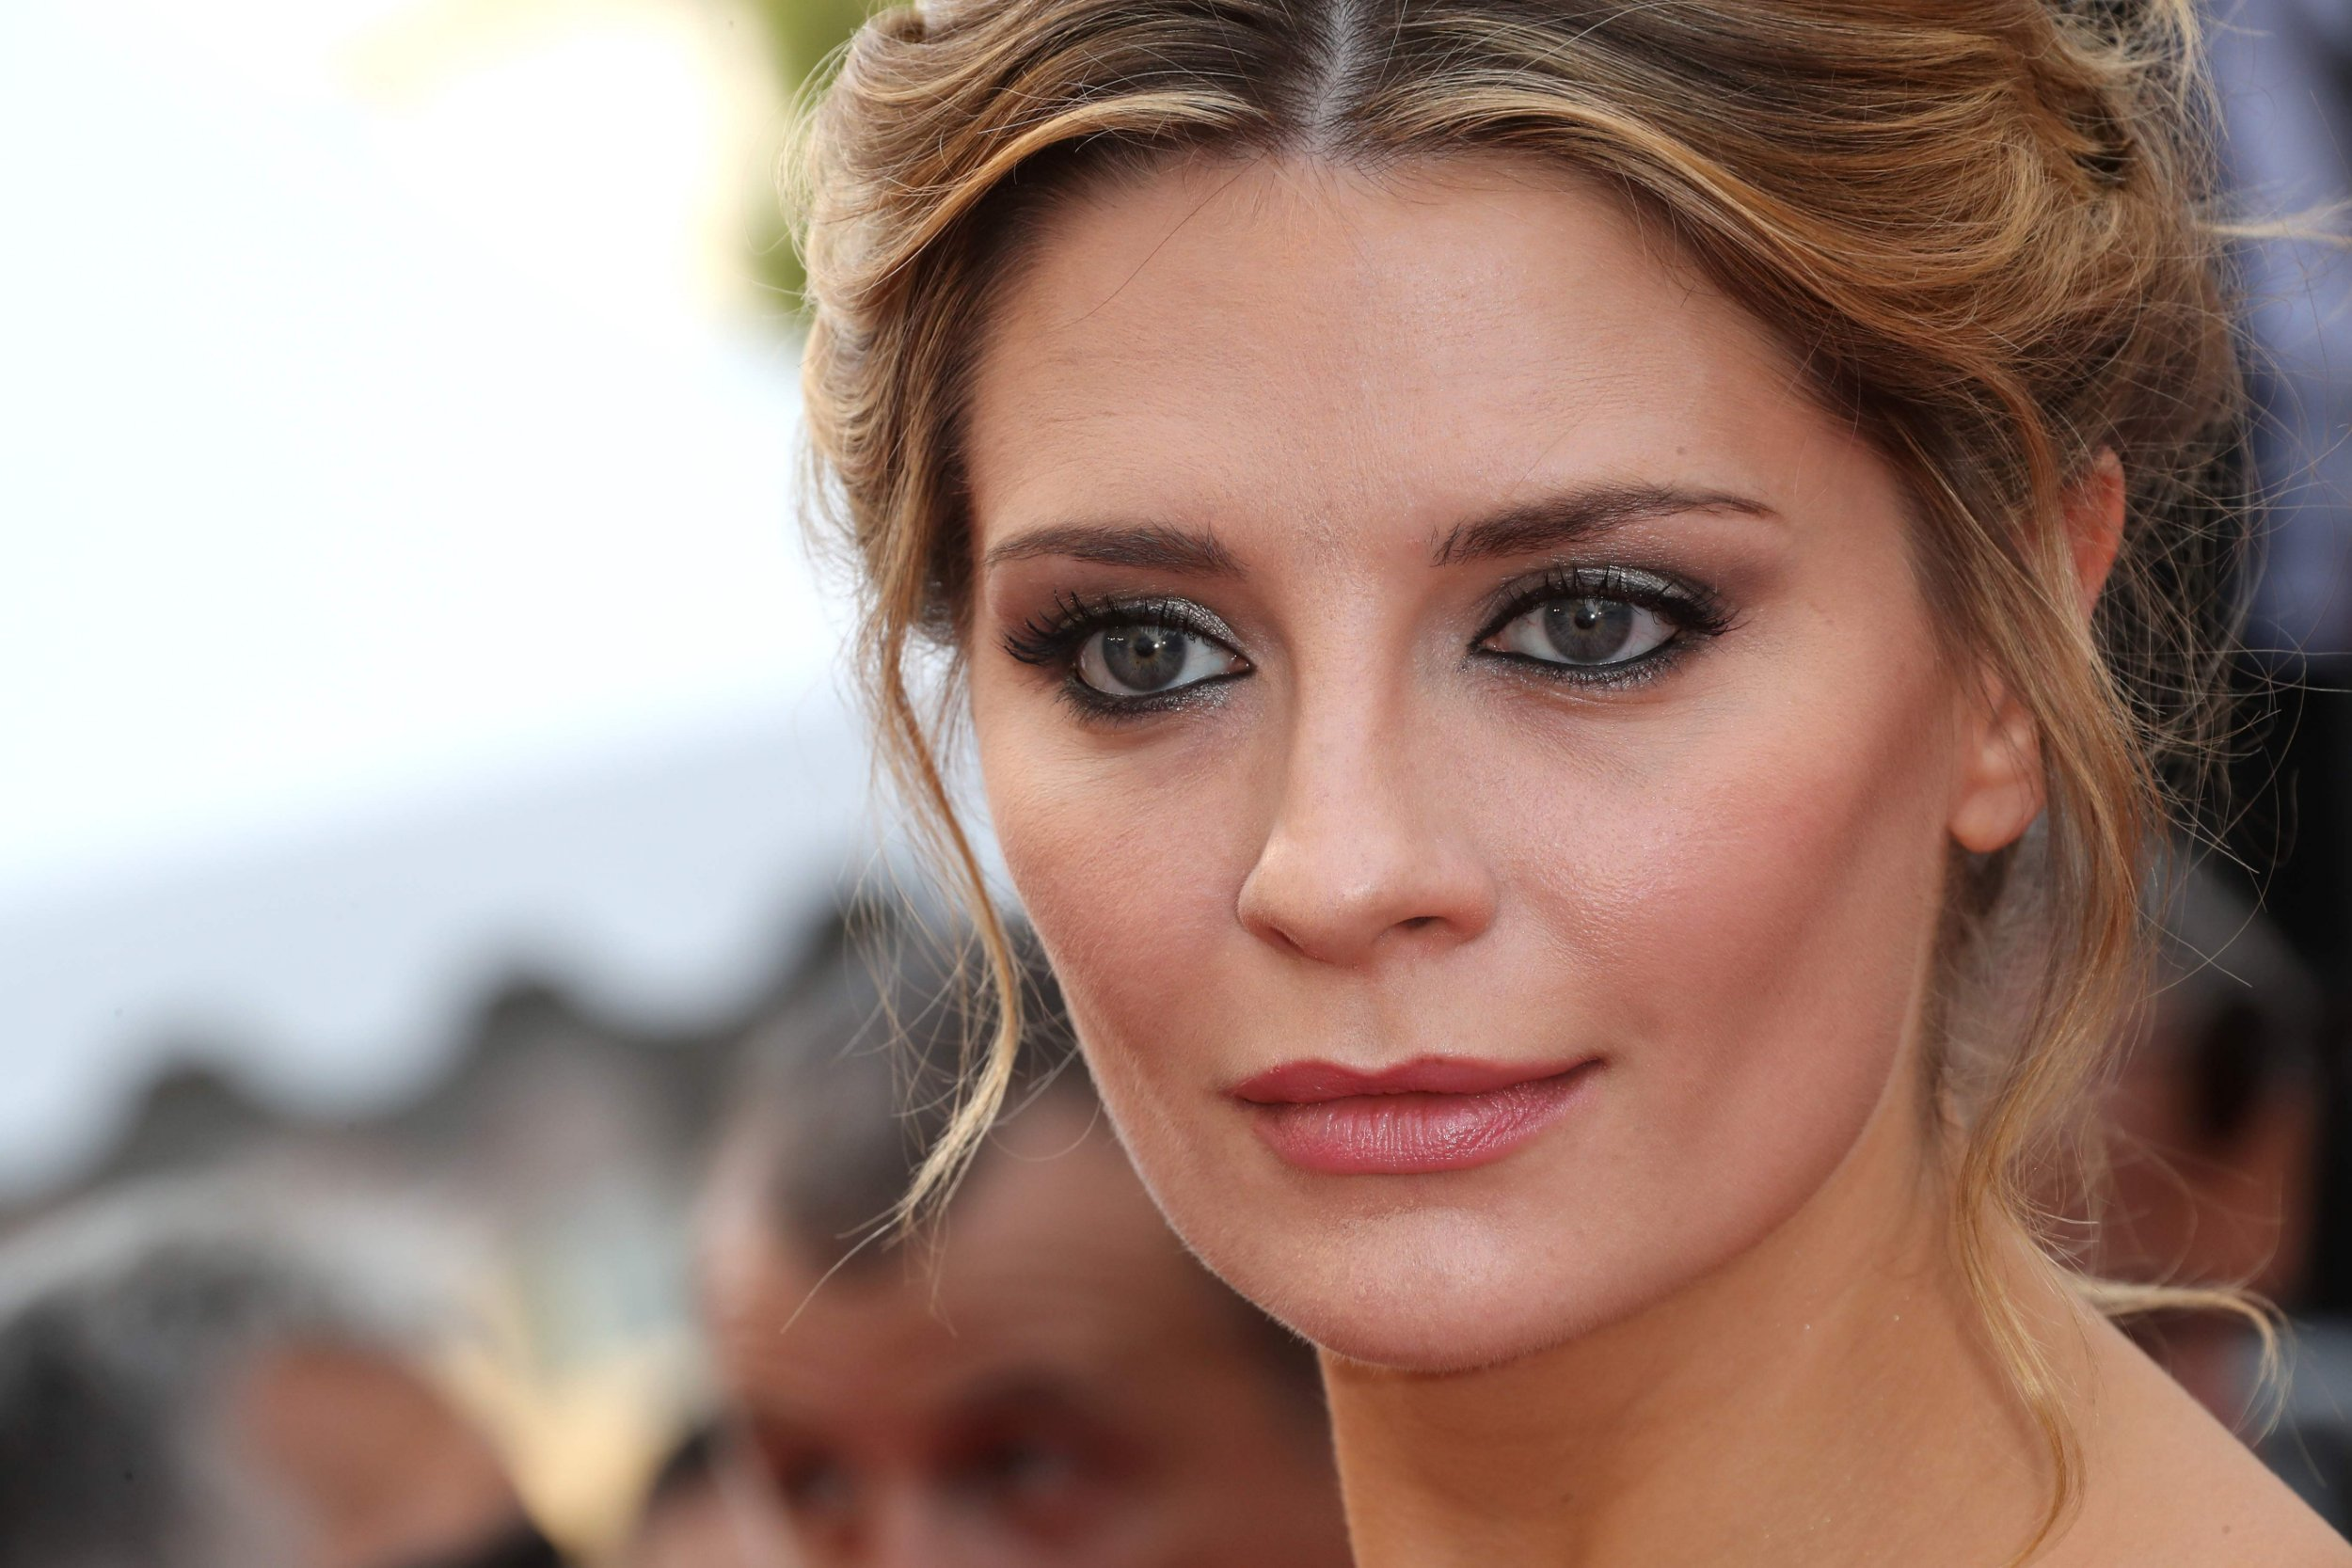 """(FILES) This file photo taken on May 16, 2016 shows British-US actress Mischa Barton arriving for the screening of the film """"Loving"""" at the 69th Cannes Film Festival in Cannes, southern France. Actress Mischa Barton is the victim of """"revenge pornography,"""" her attorney said Tuesday, threatening legal action against anyone touting sexually explicit images of the 31-year-old actress. / AFP PHOTO / Valery HACHEVALERY HACHE/AFP/Getty Images"""